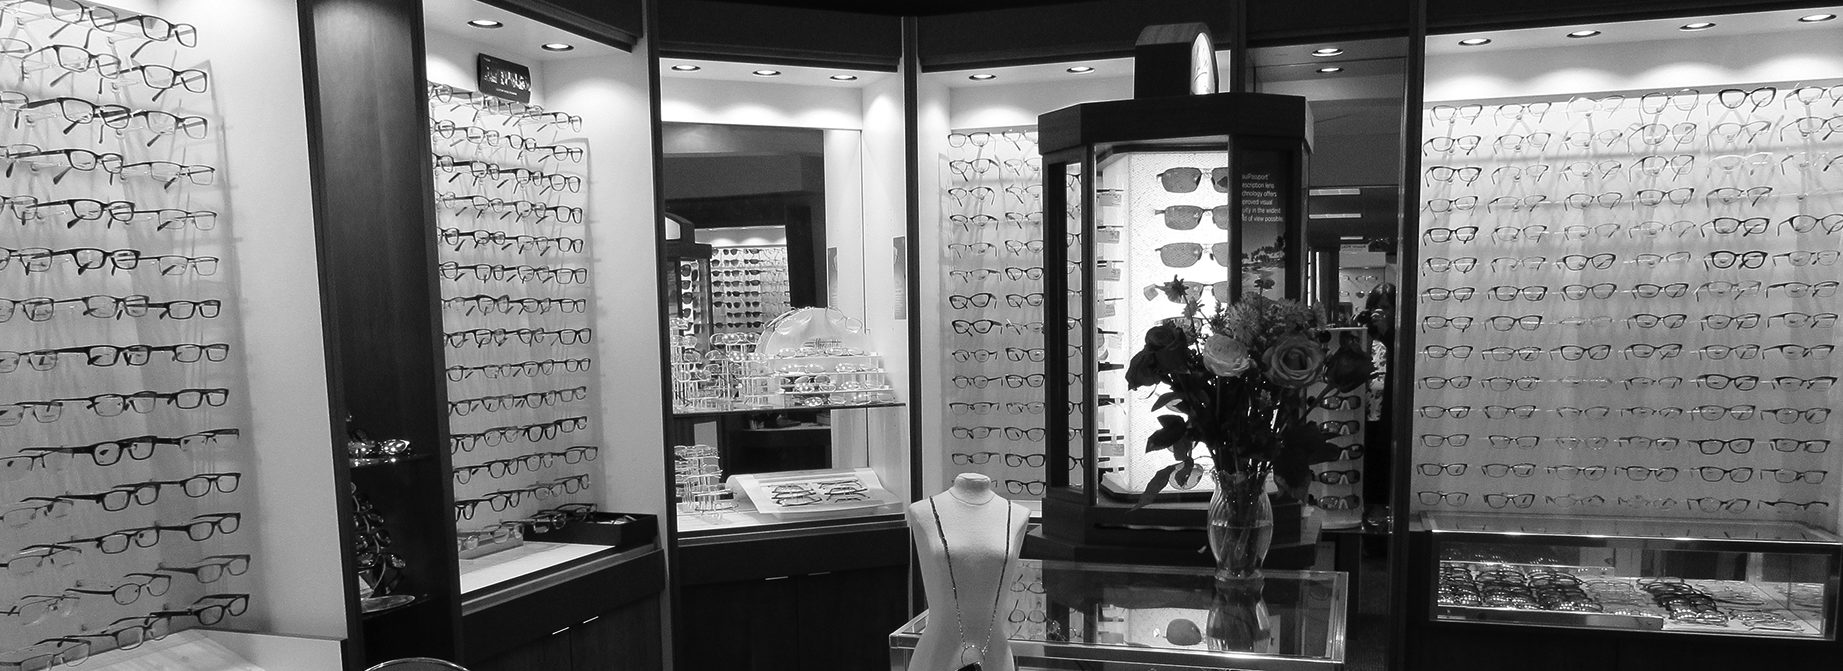 Deerfield Optical – Located in Deerfield Square